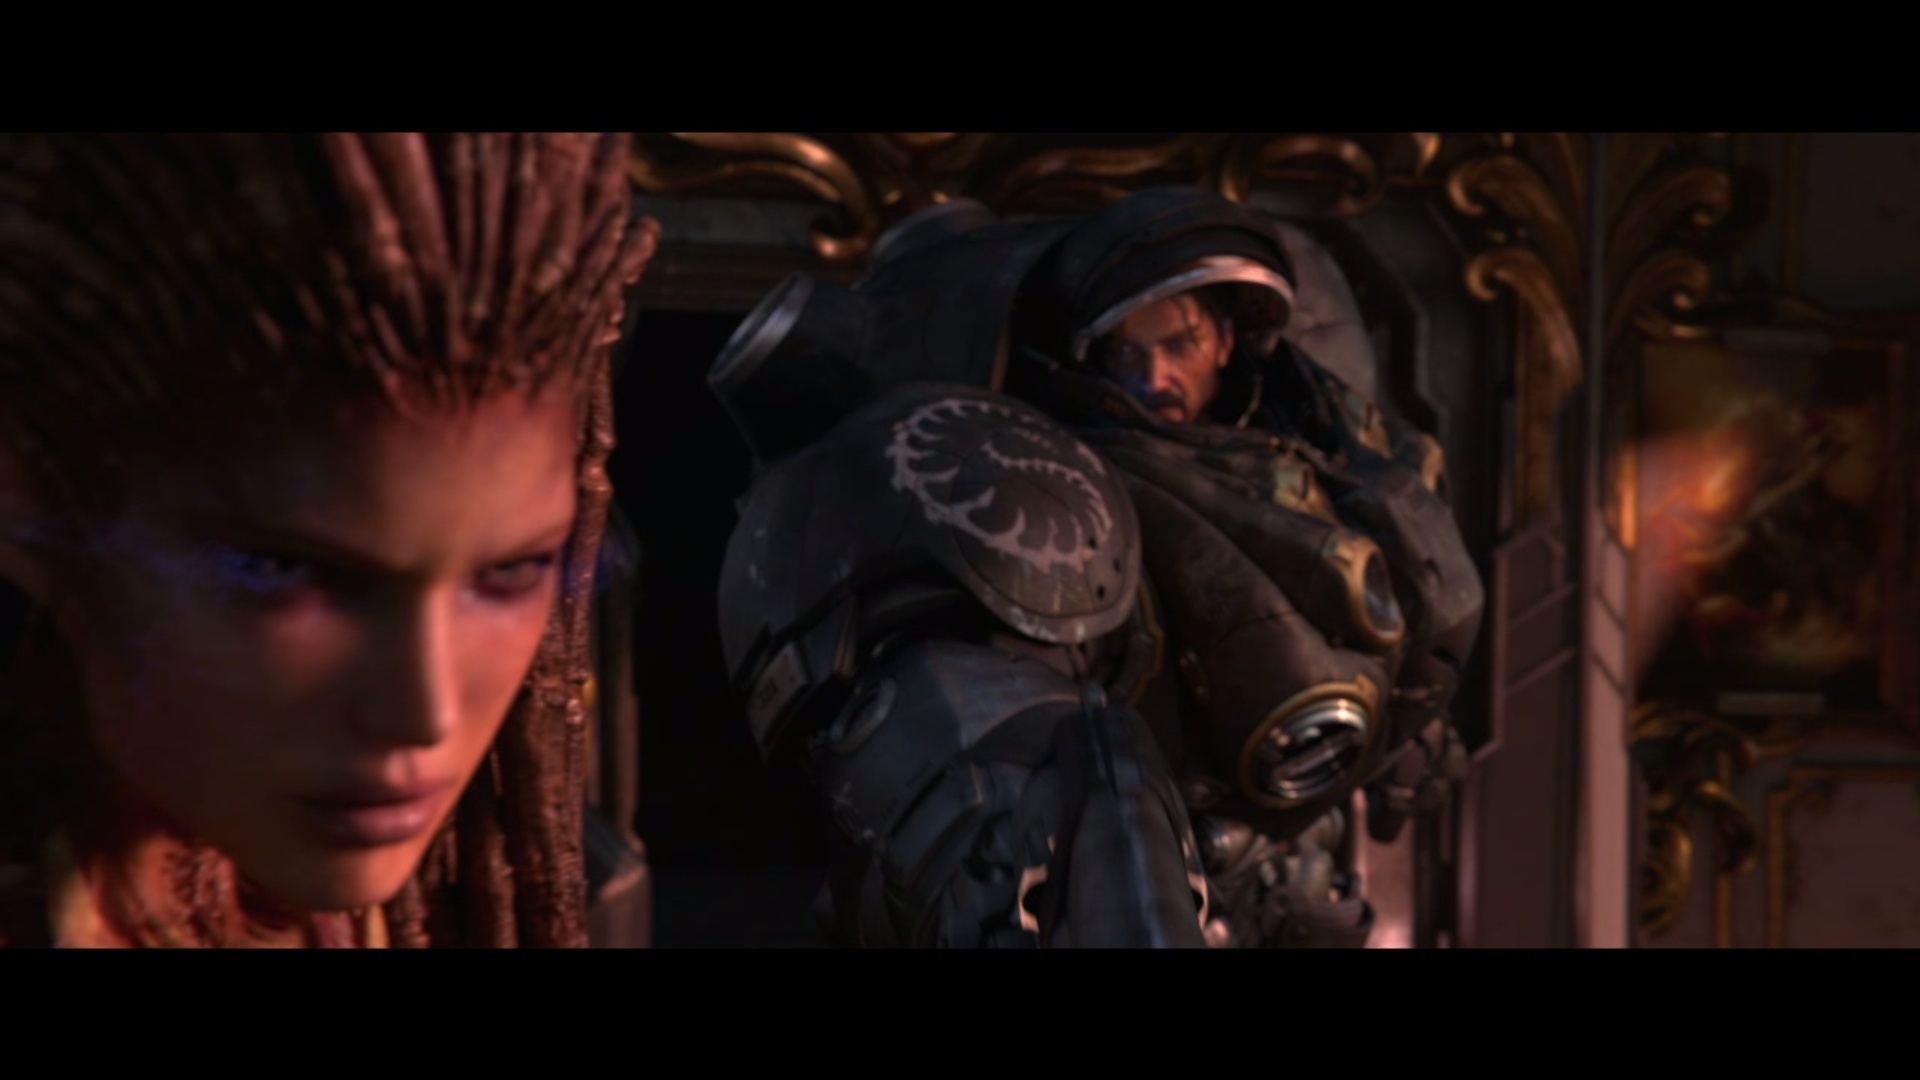 raynor and kerrigan relationship help